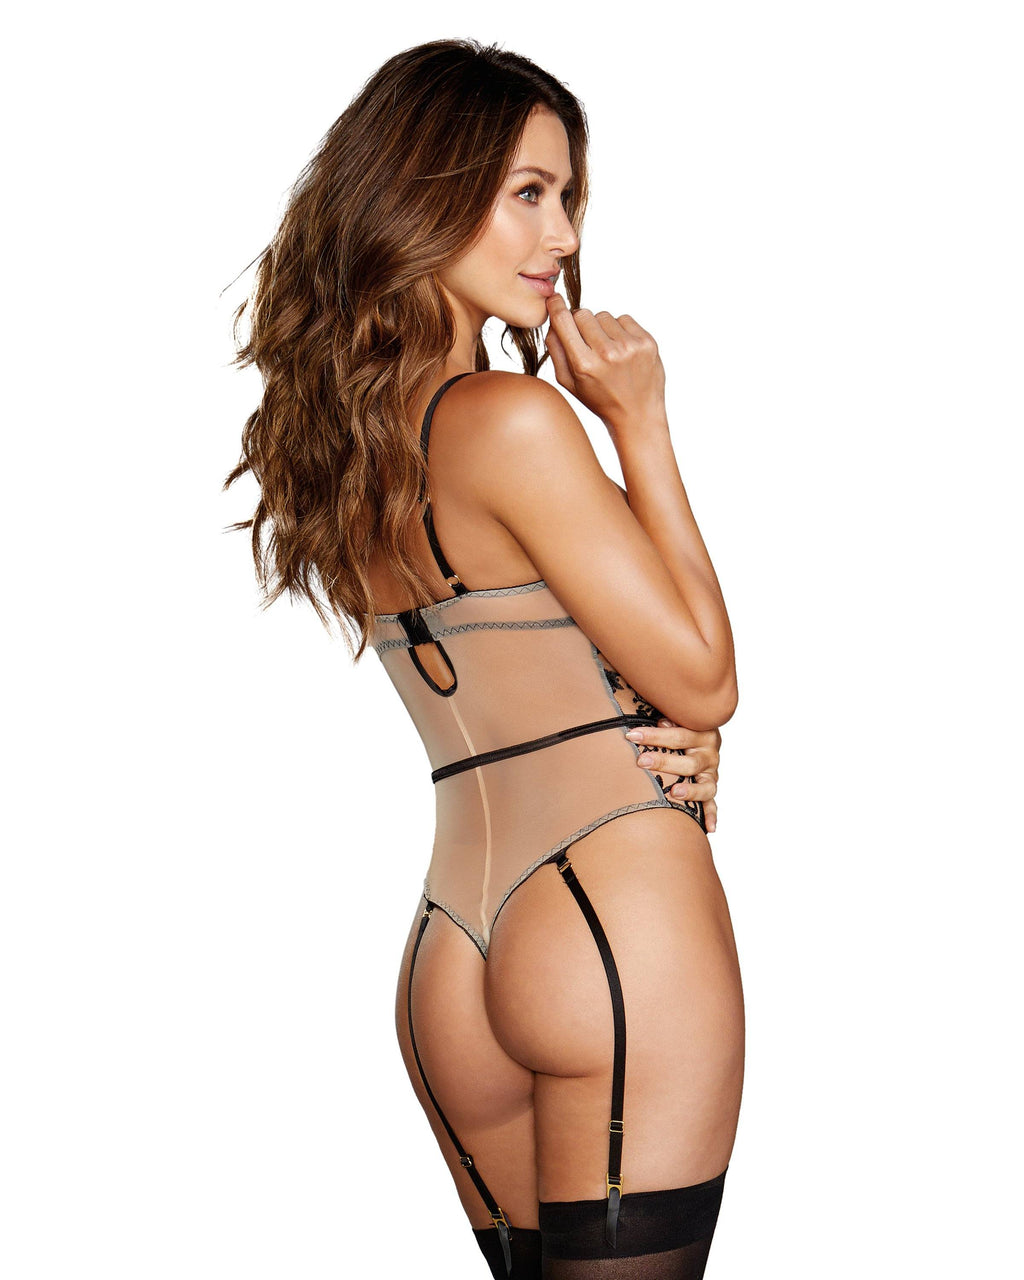 Sheer Nude Stretch Mesh Teddy with Contrasting Embroidery Teddy Dreamgirl International